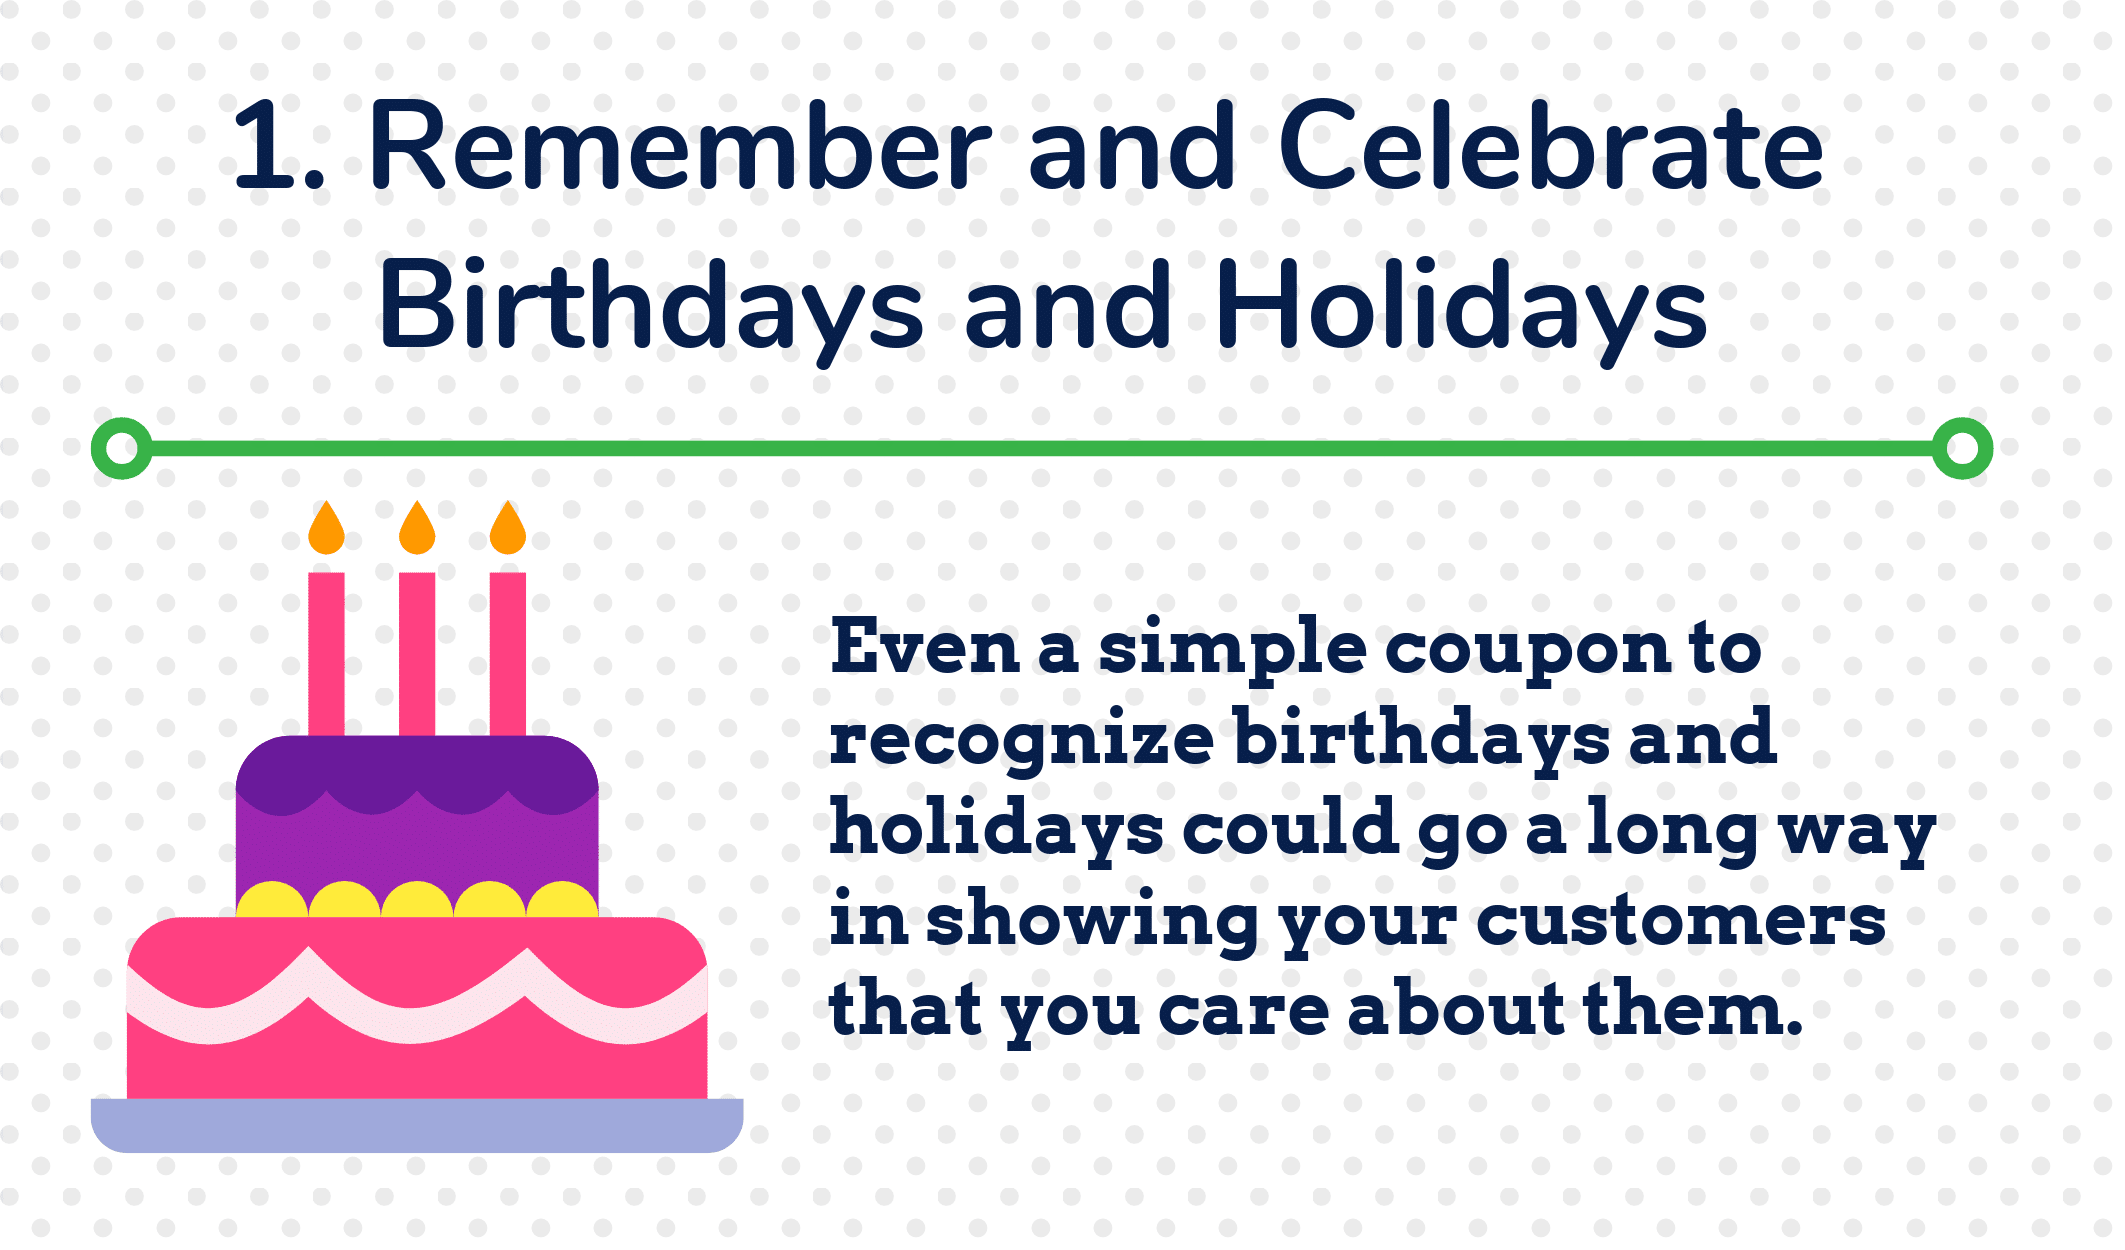 1. Remember and Celebrate Birthdays and Holidays